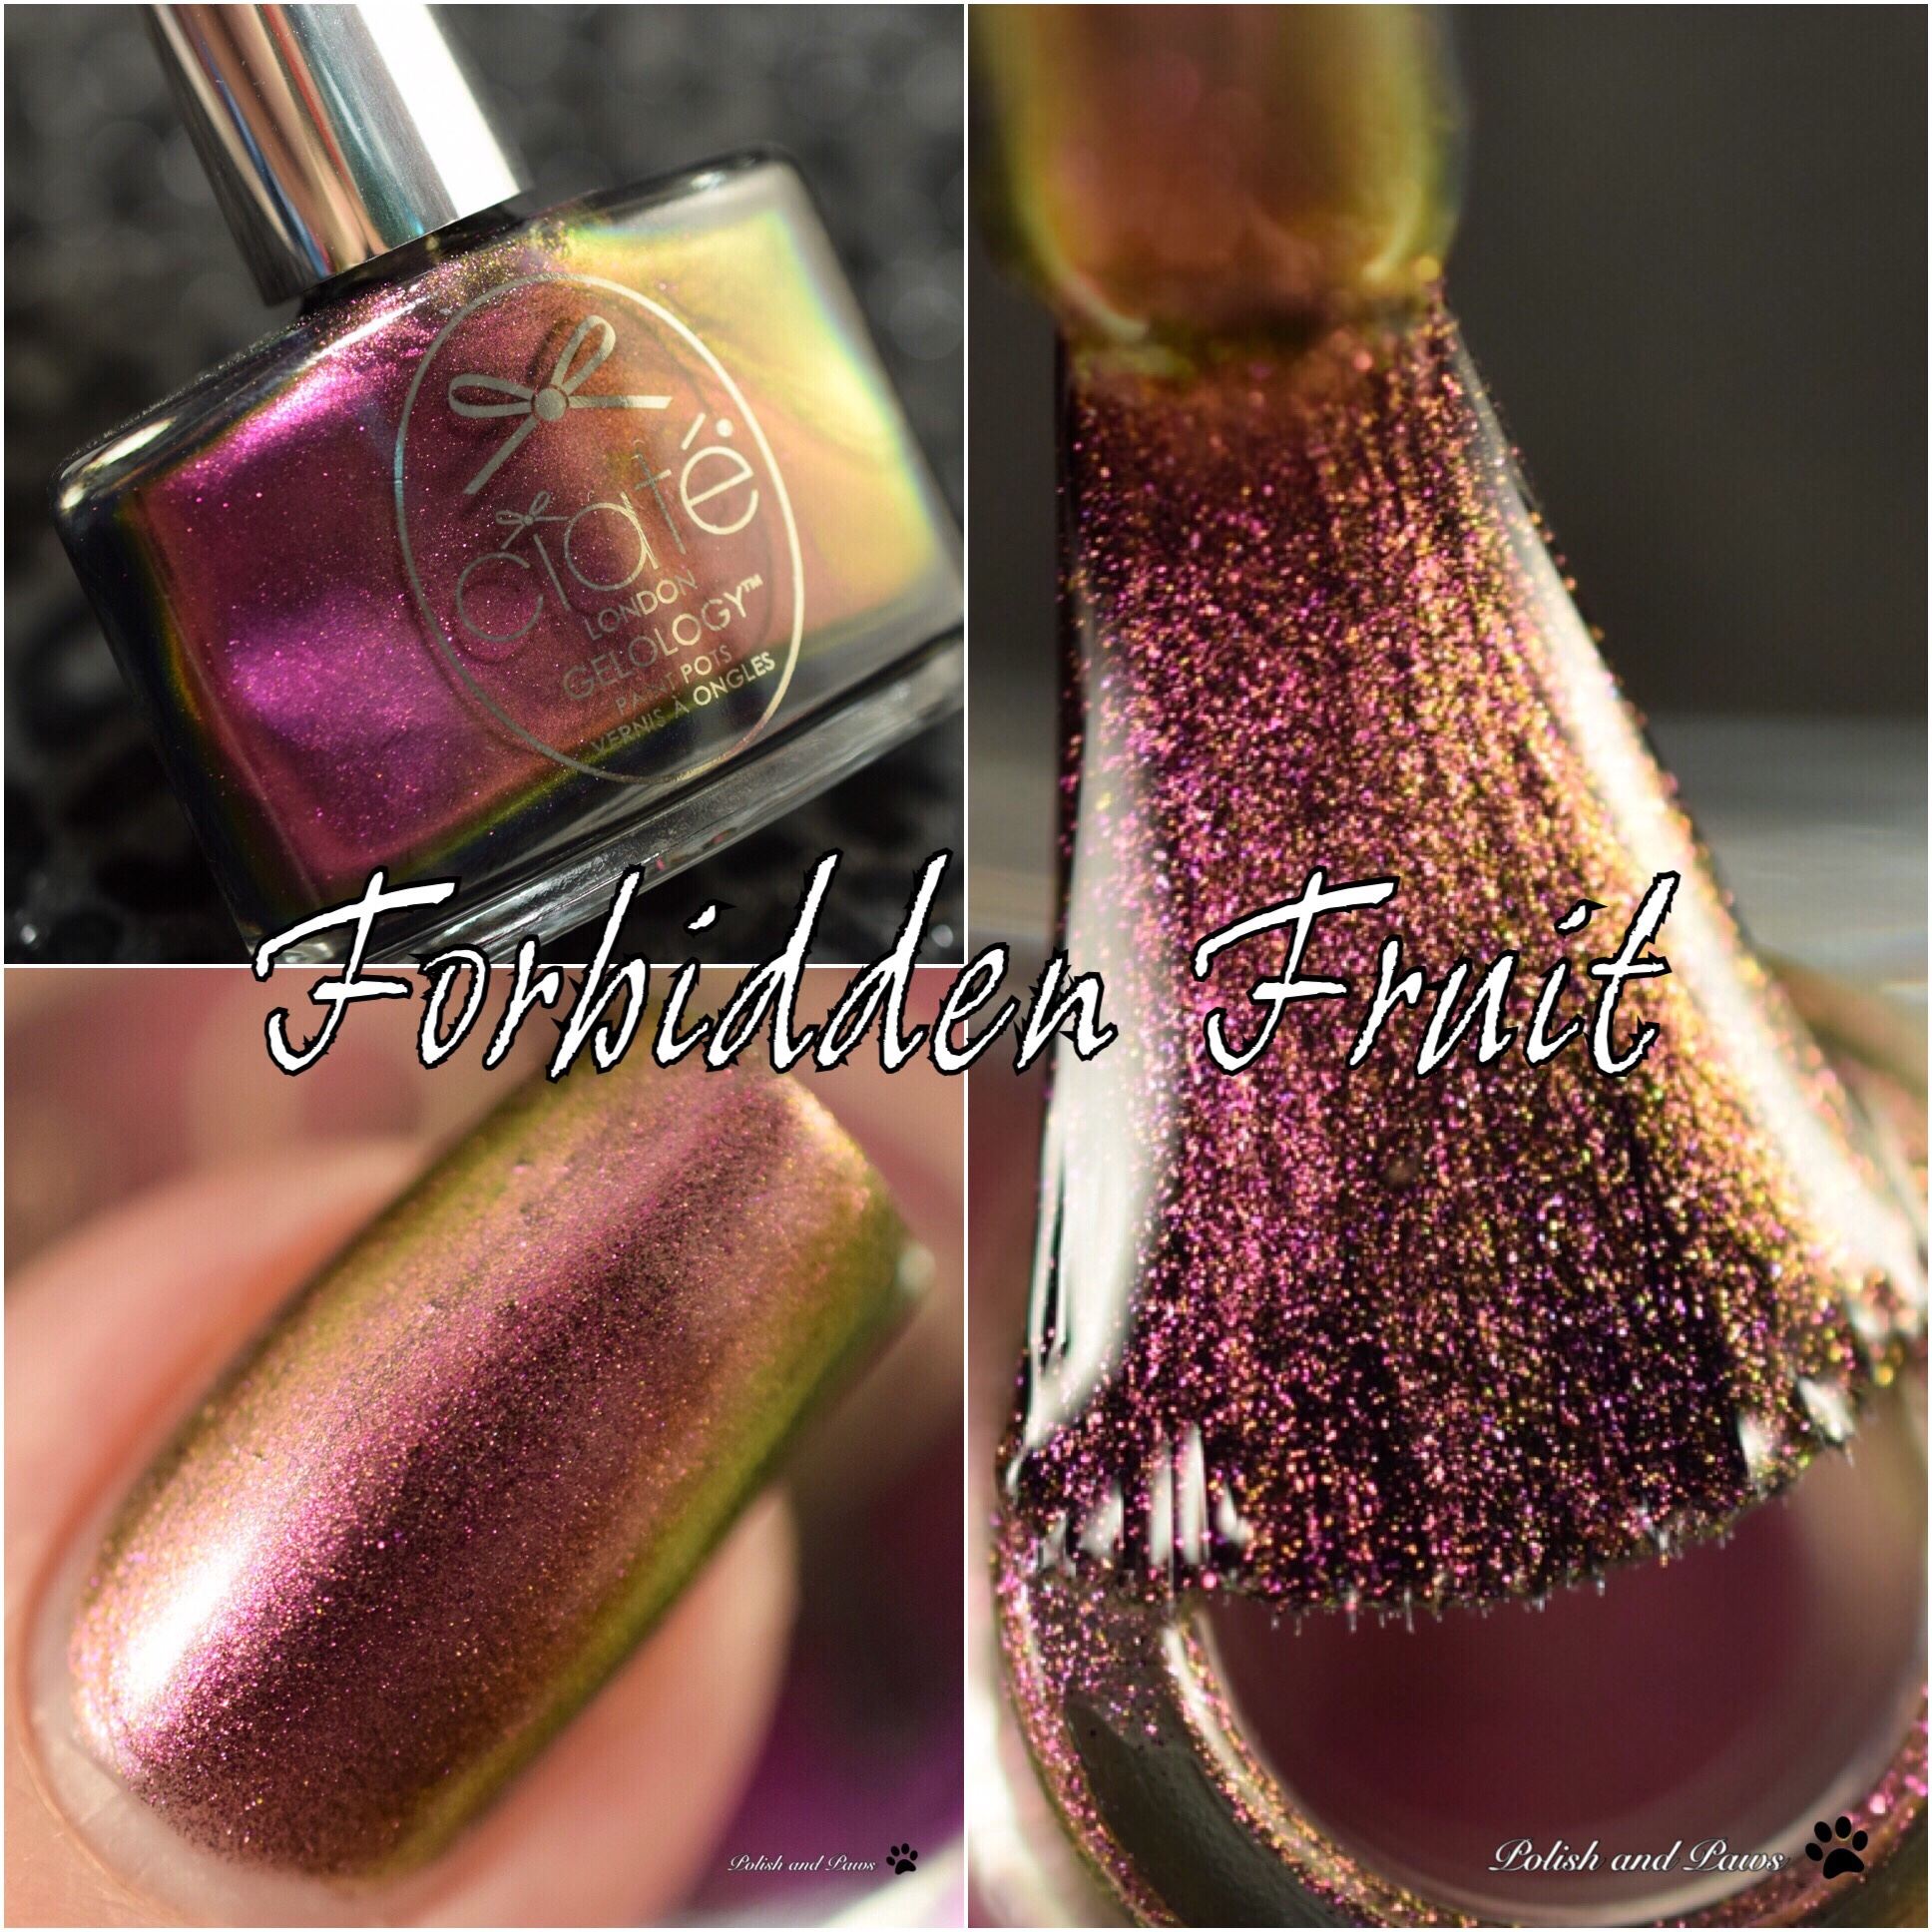 Ciate London Forbidden Fruit